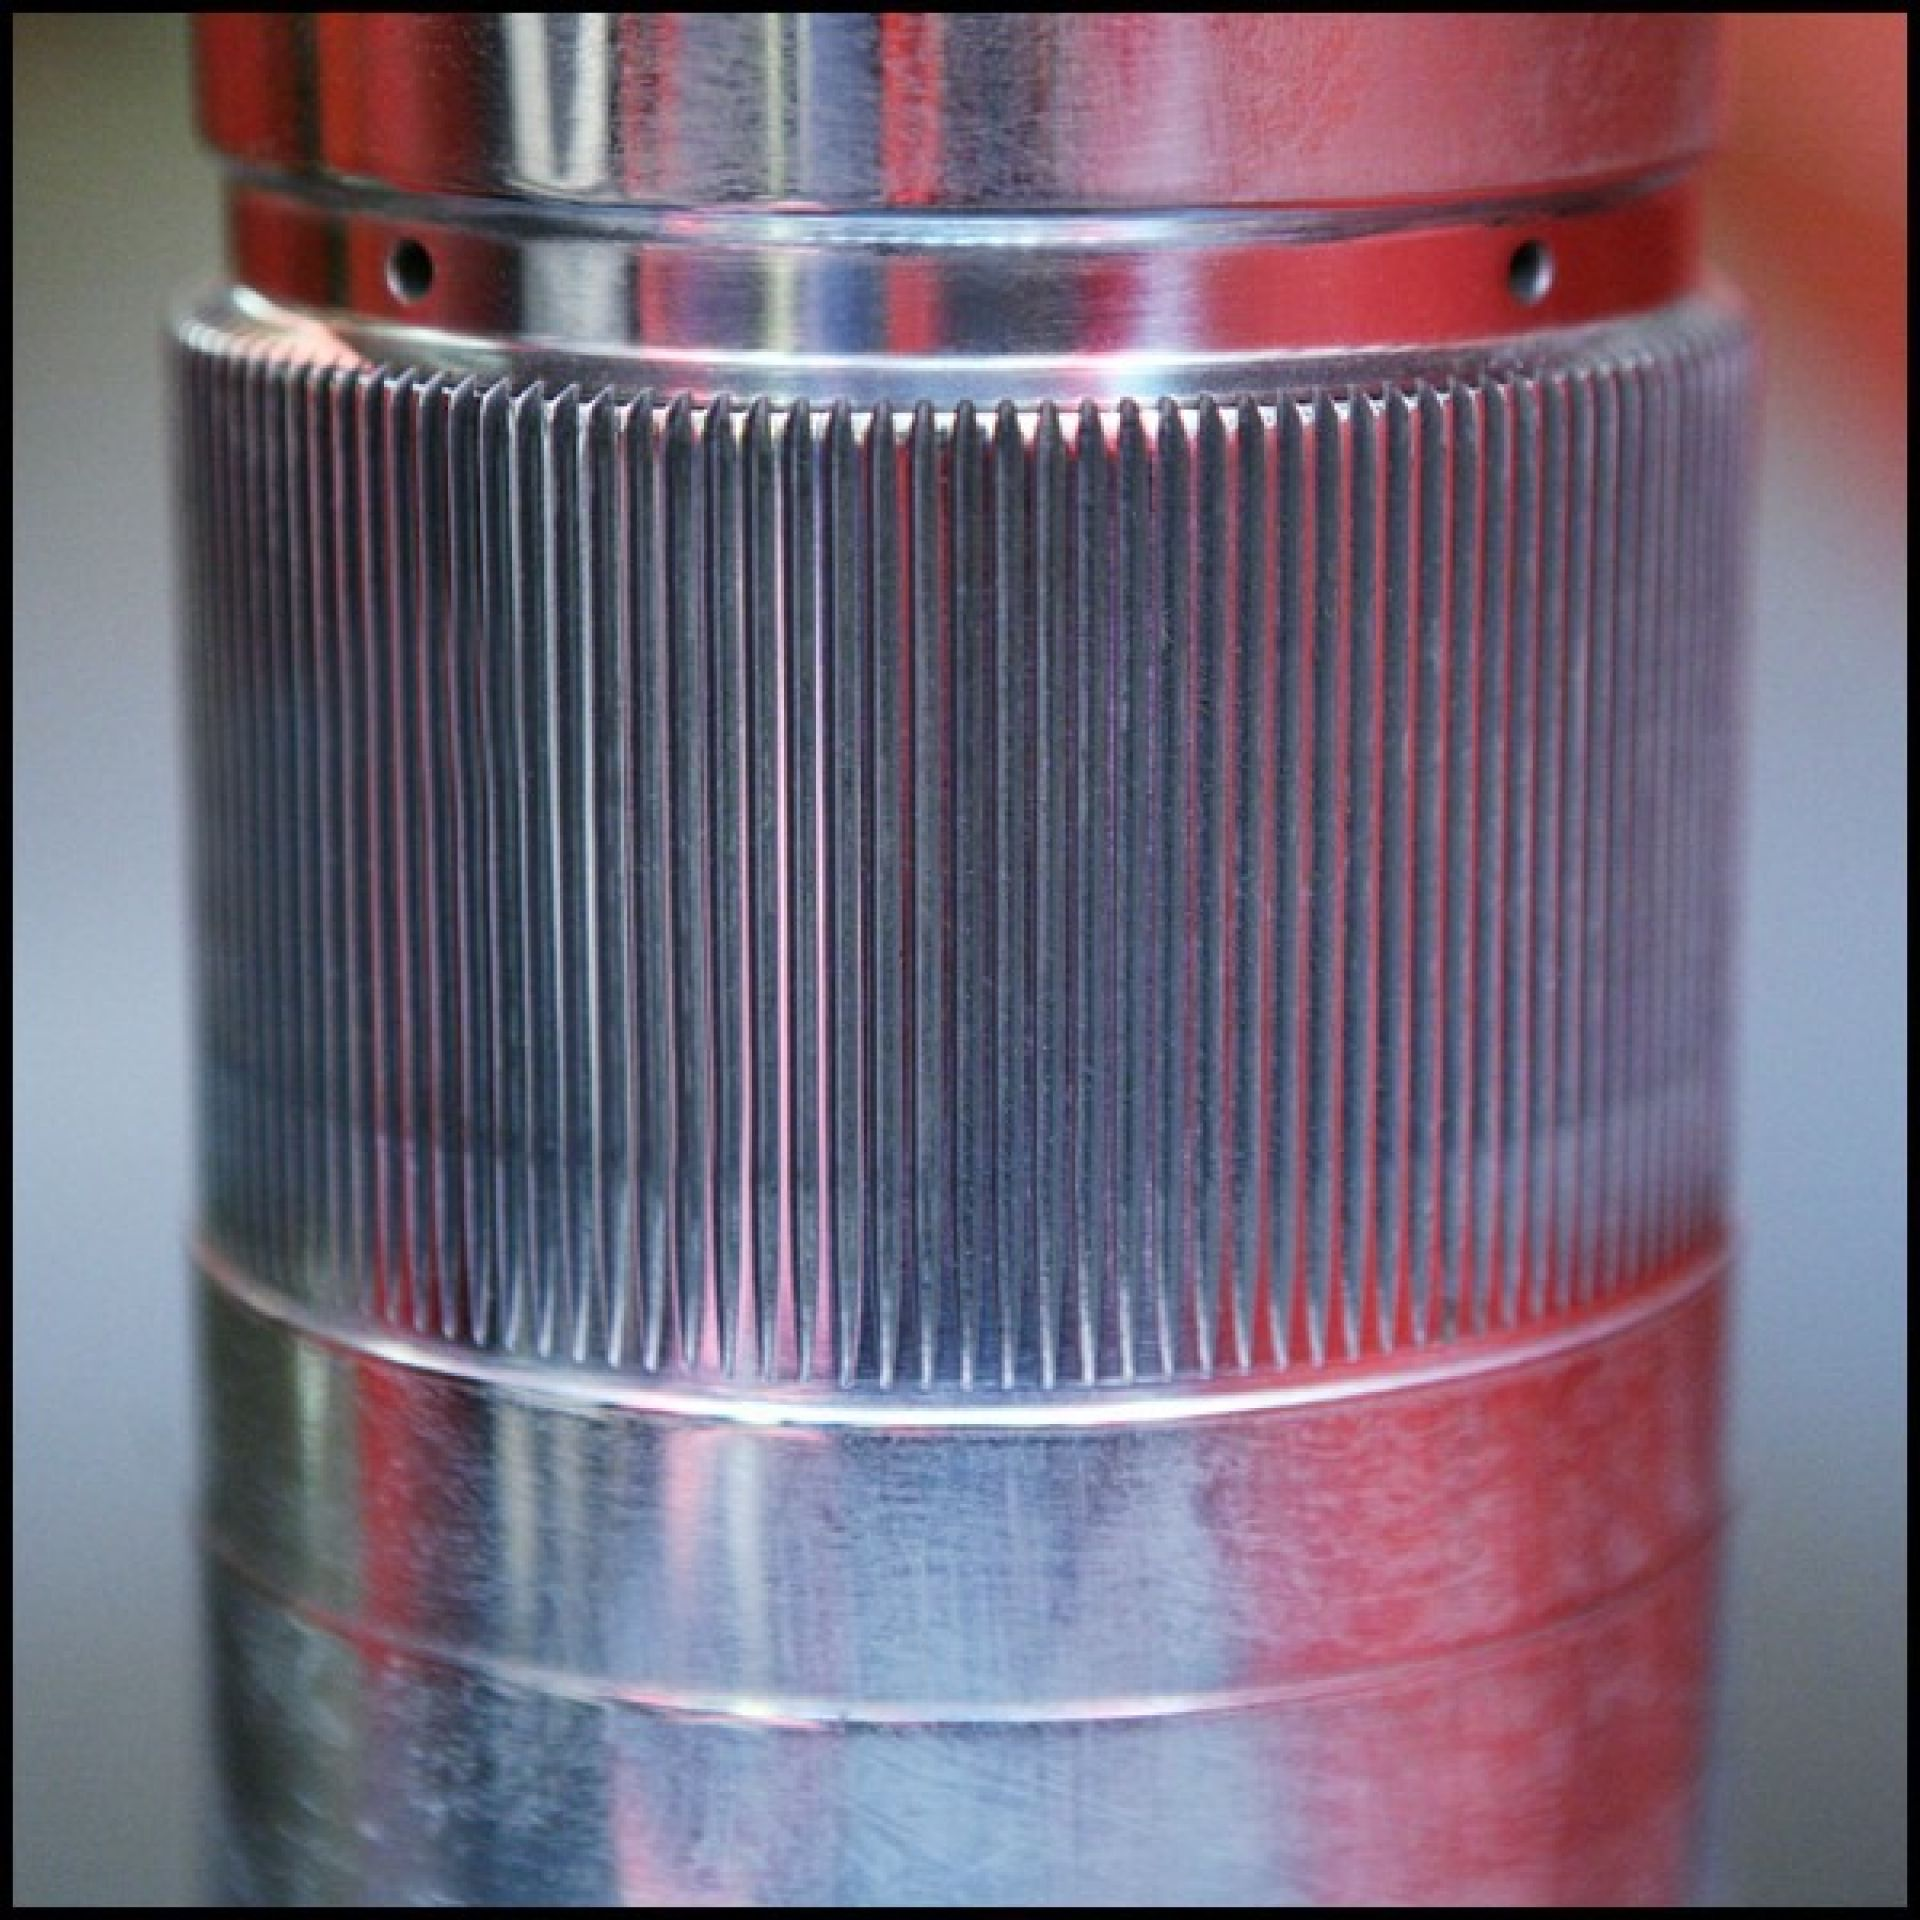 SIDE TABLE MADE FROM A BOEING PC-BOEING 737 AIRCRAFT ENGINE TITANIUM GEAR